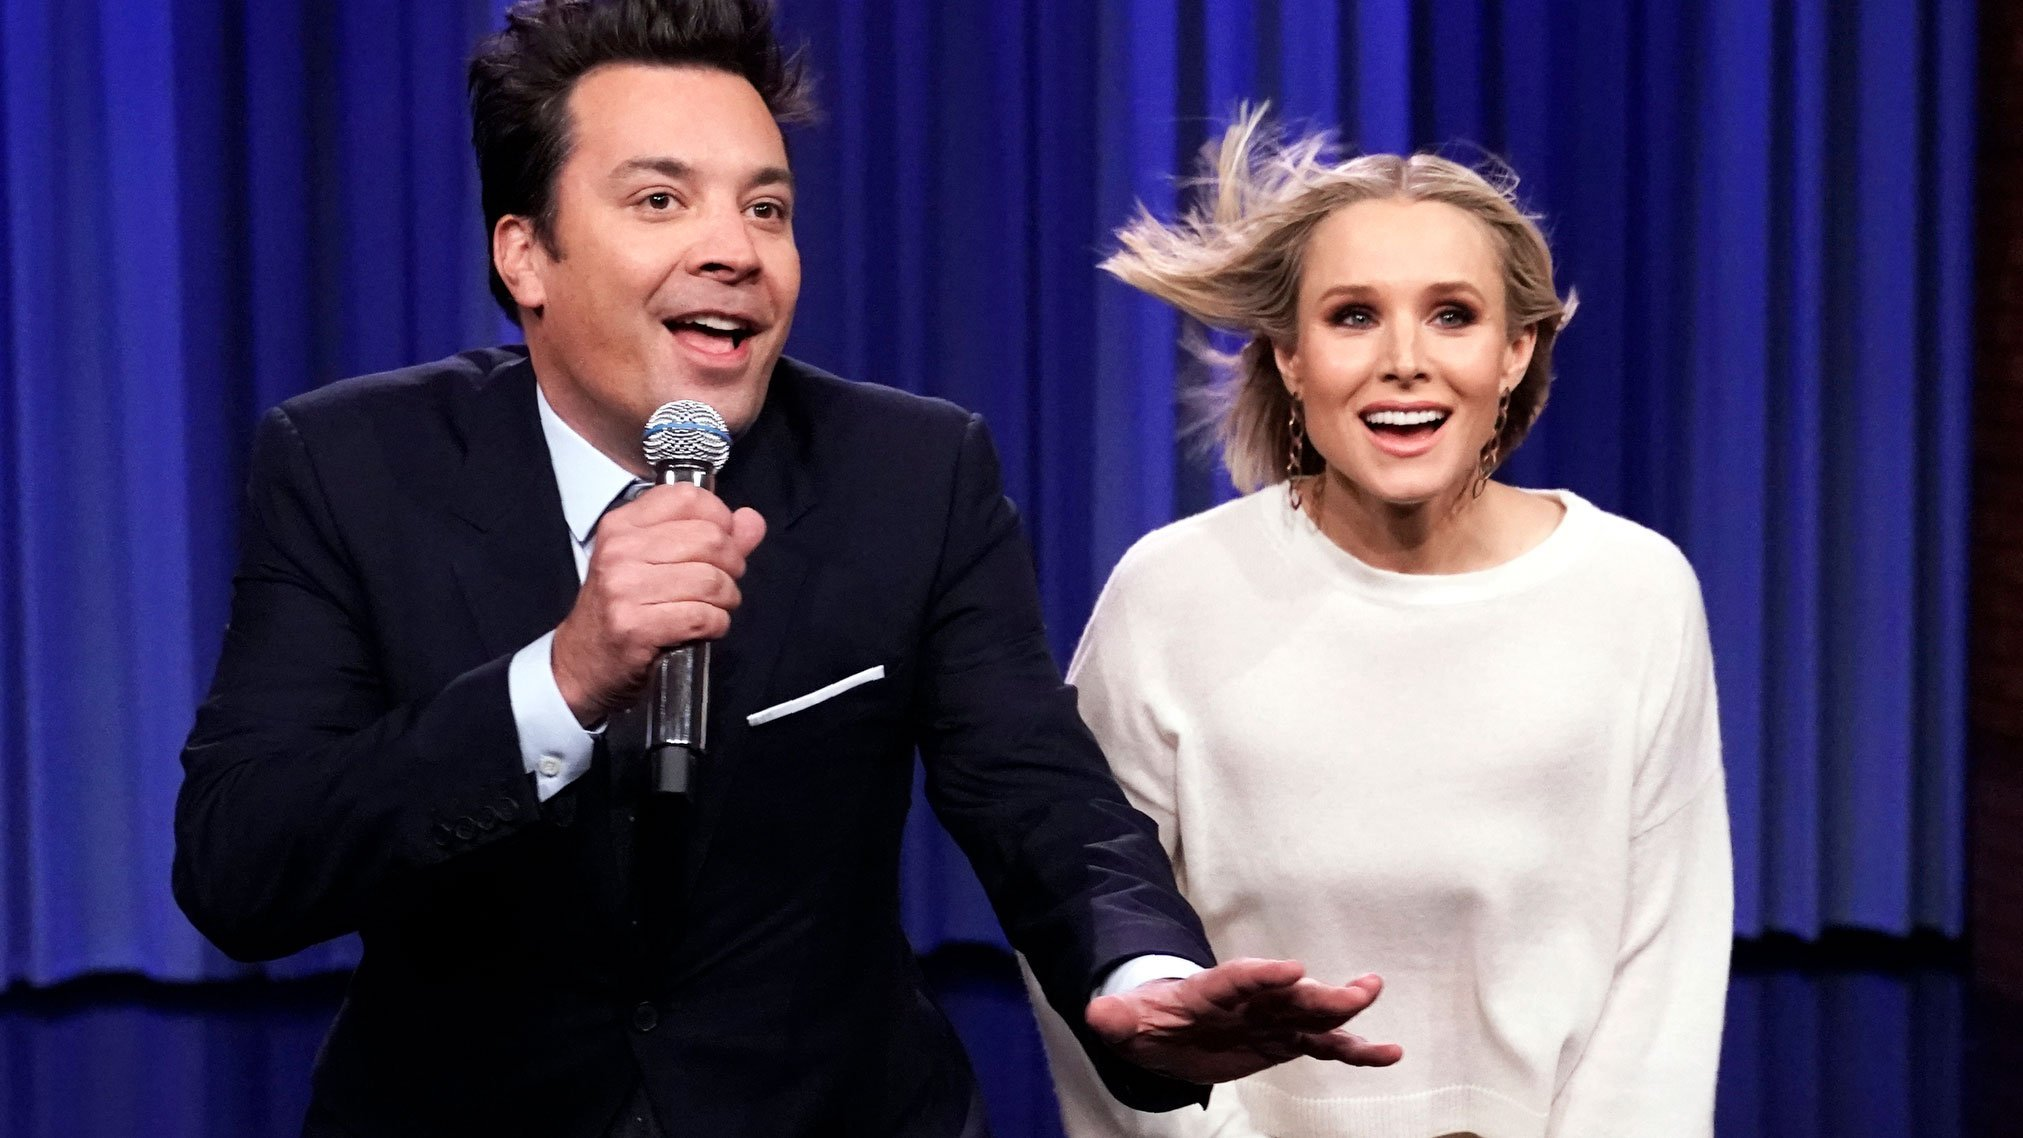 Jimmy Fallon and Kristen Bell team up for an epic Disney classic duet